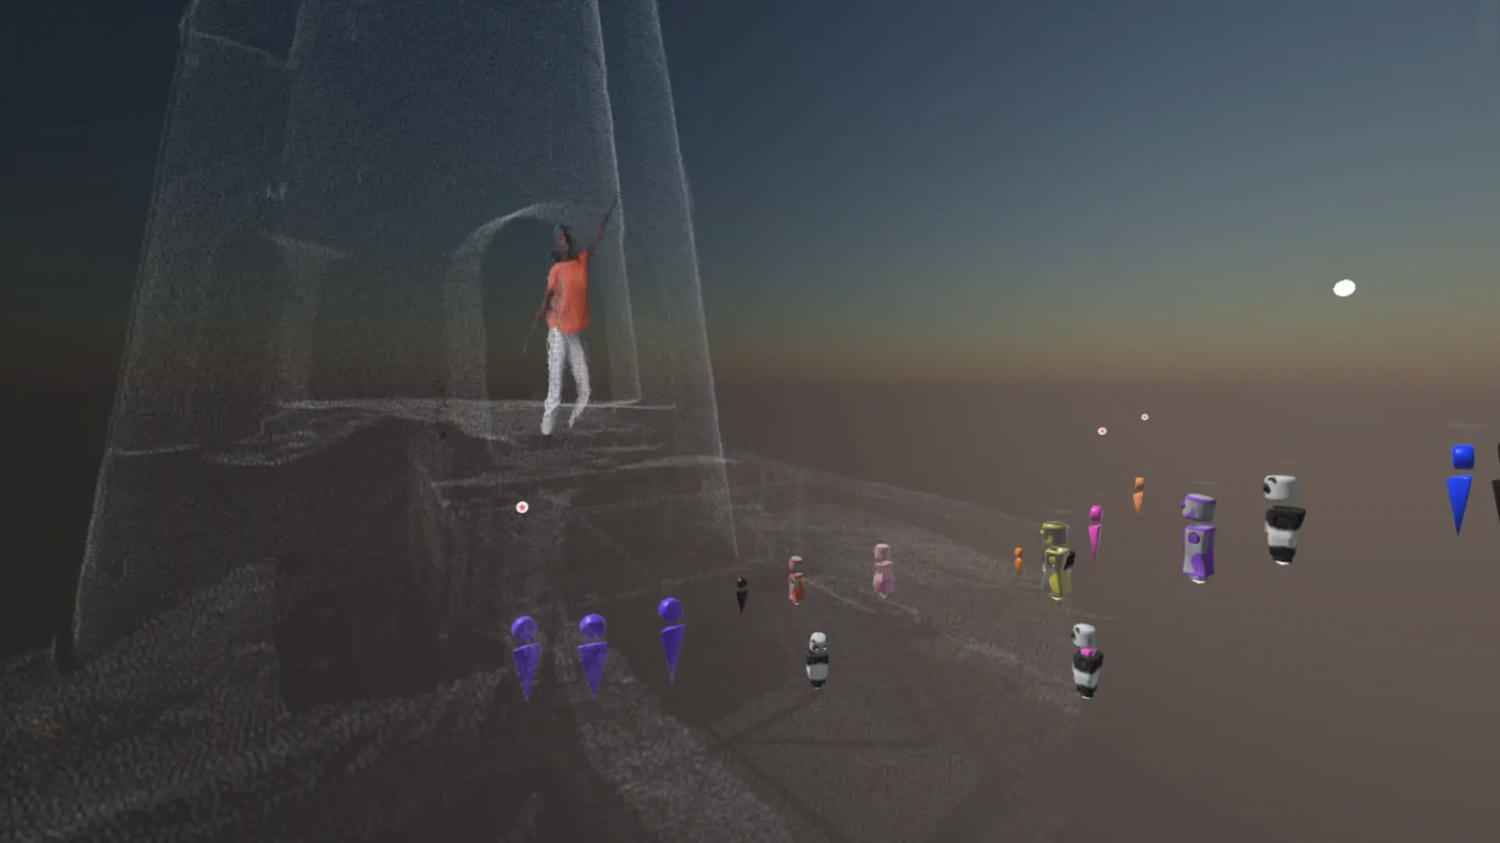 3D representation of Valencia dances on white platform structure while avatars watch